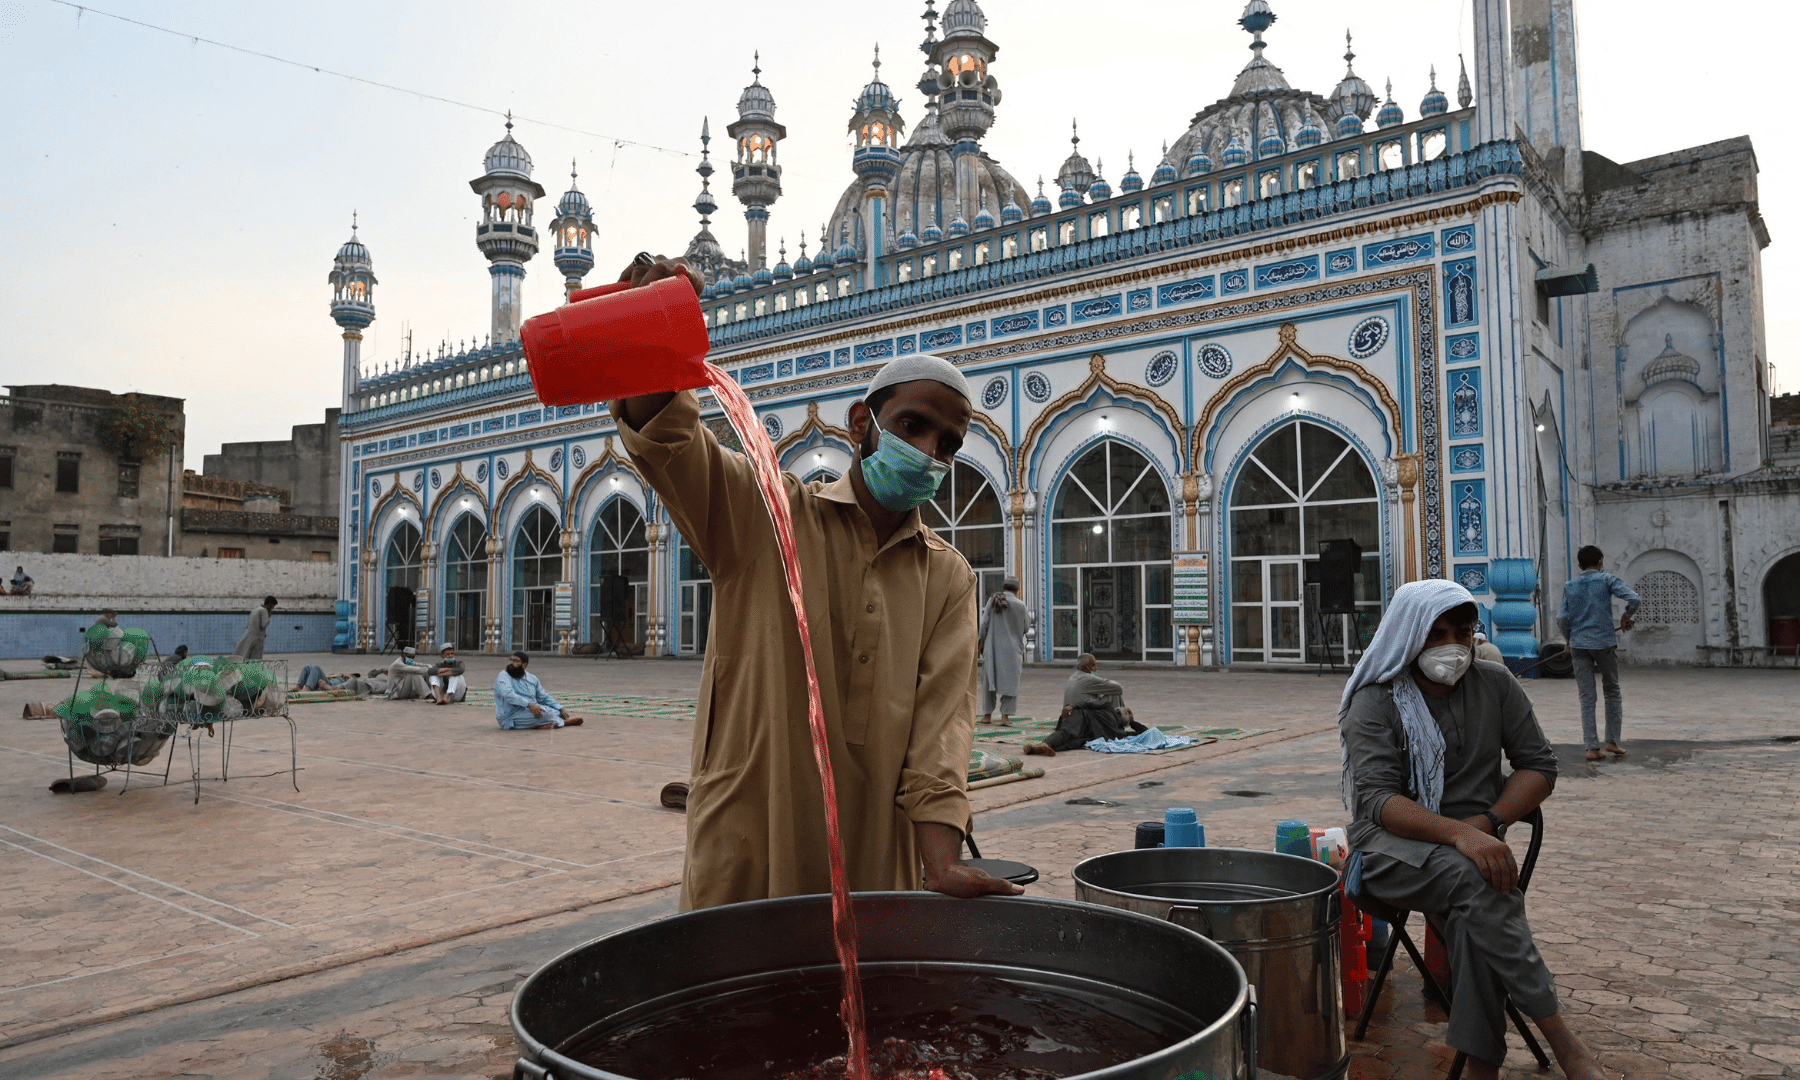 A volunteer prepares drinks for worshippers before they break their fast on the first day of Ramazan, at the Jamia Mosque in Rawalpindi on Wednesday. — AFP